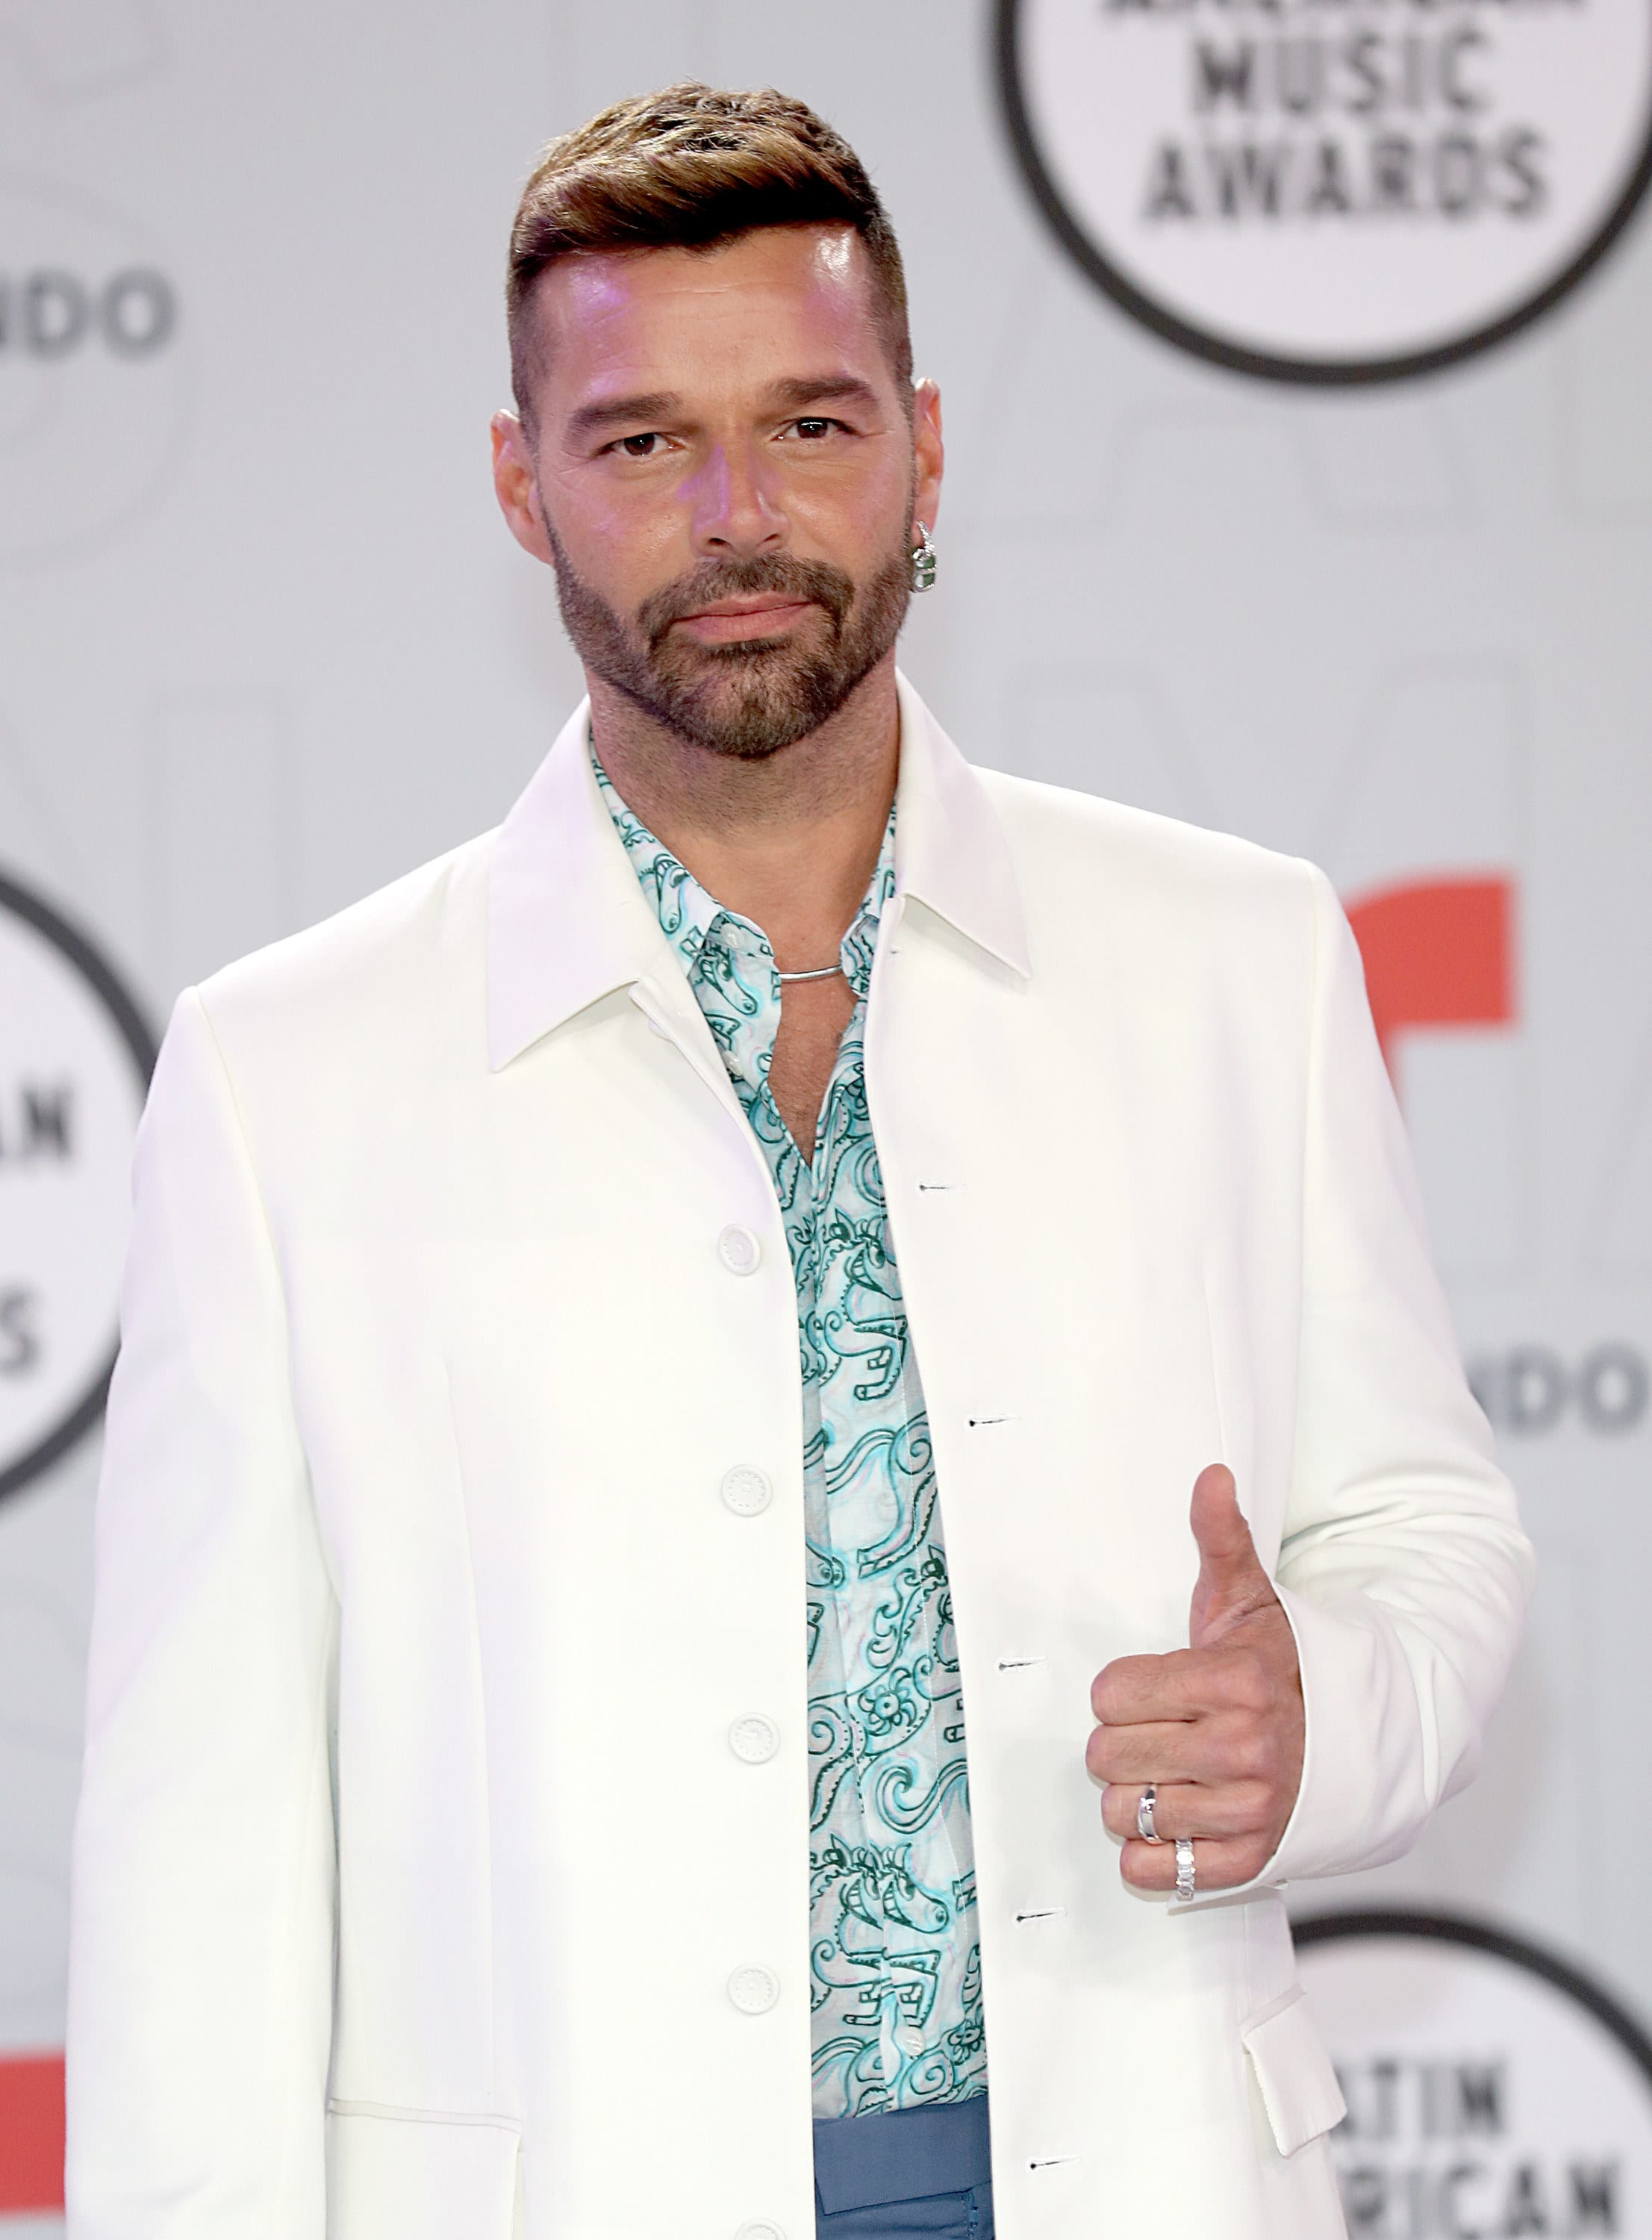 Martin at the American Music Awards in 2021